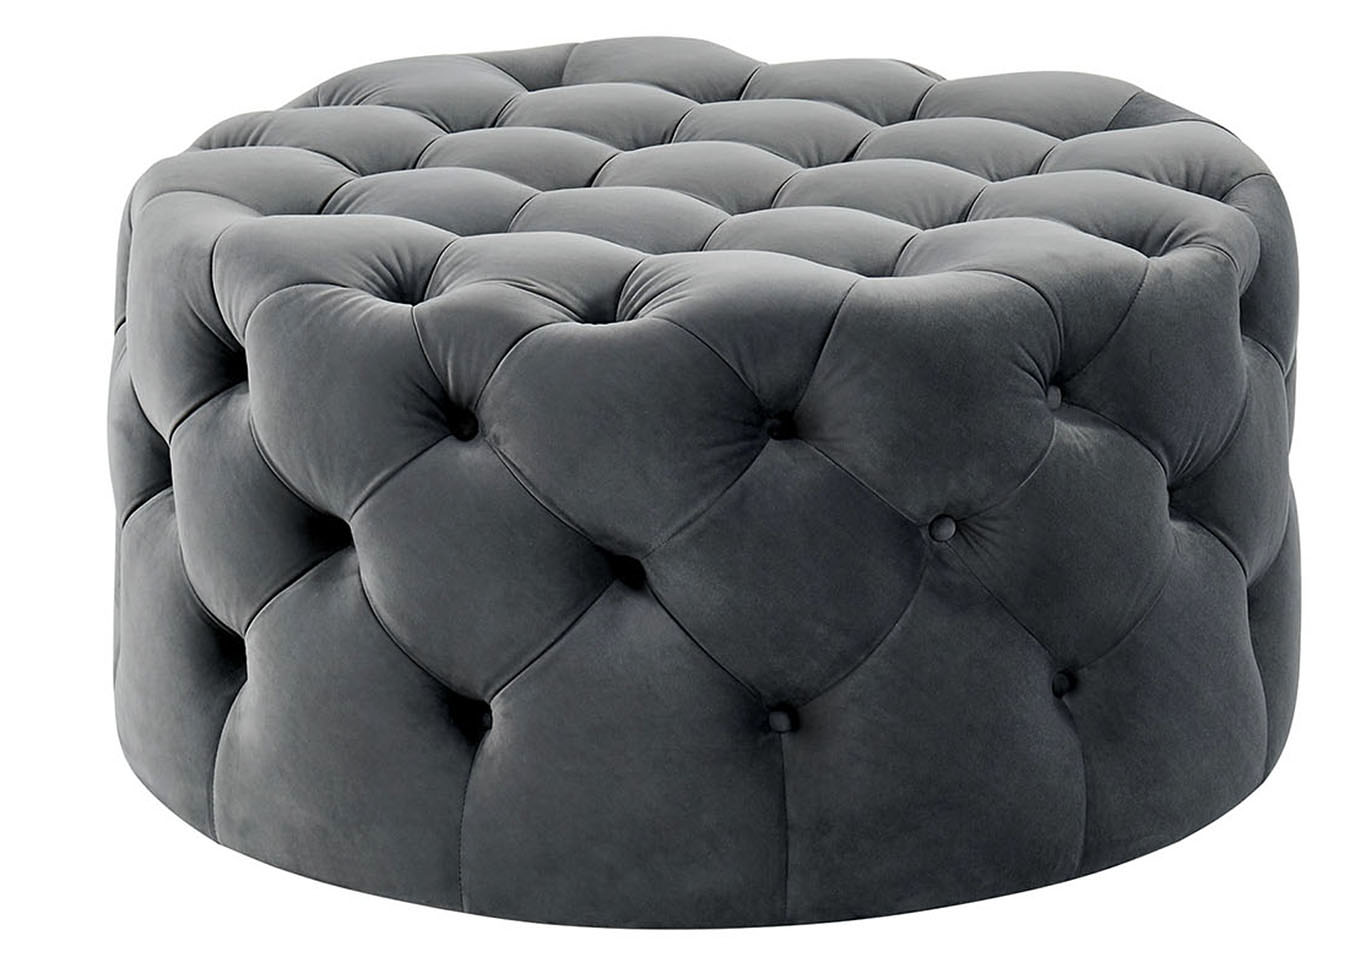 Alina Gray Upholstered Ottoman,Furniture of America